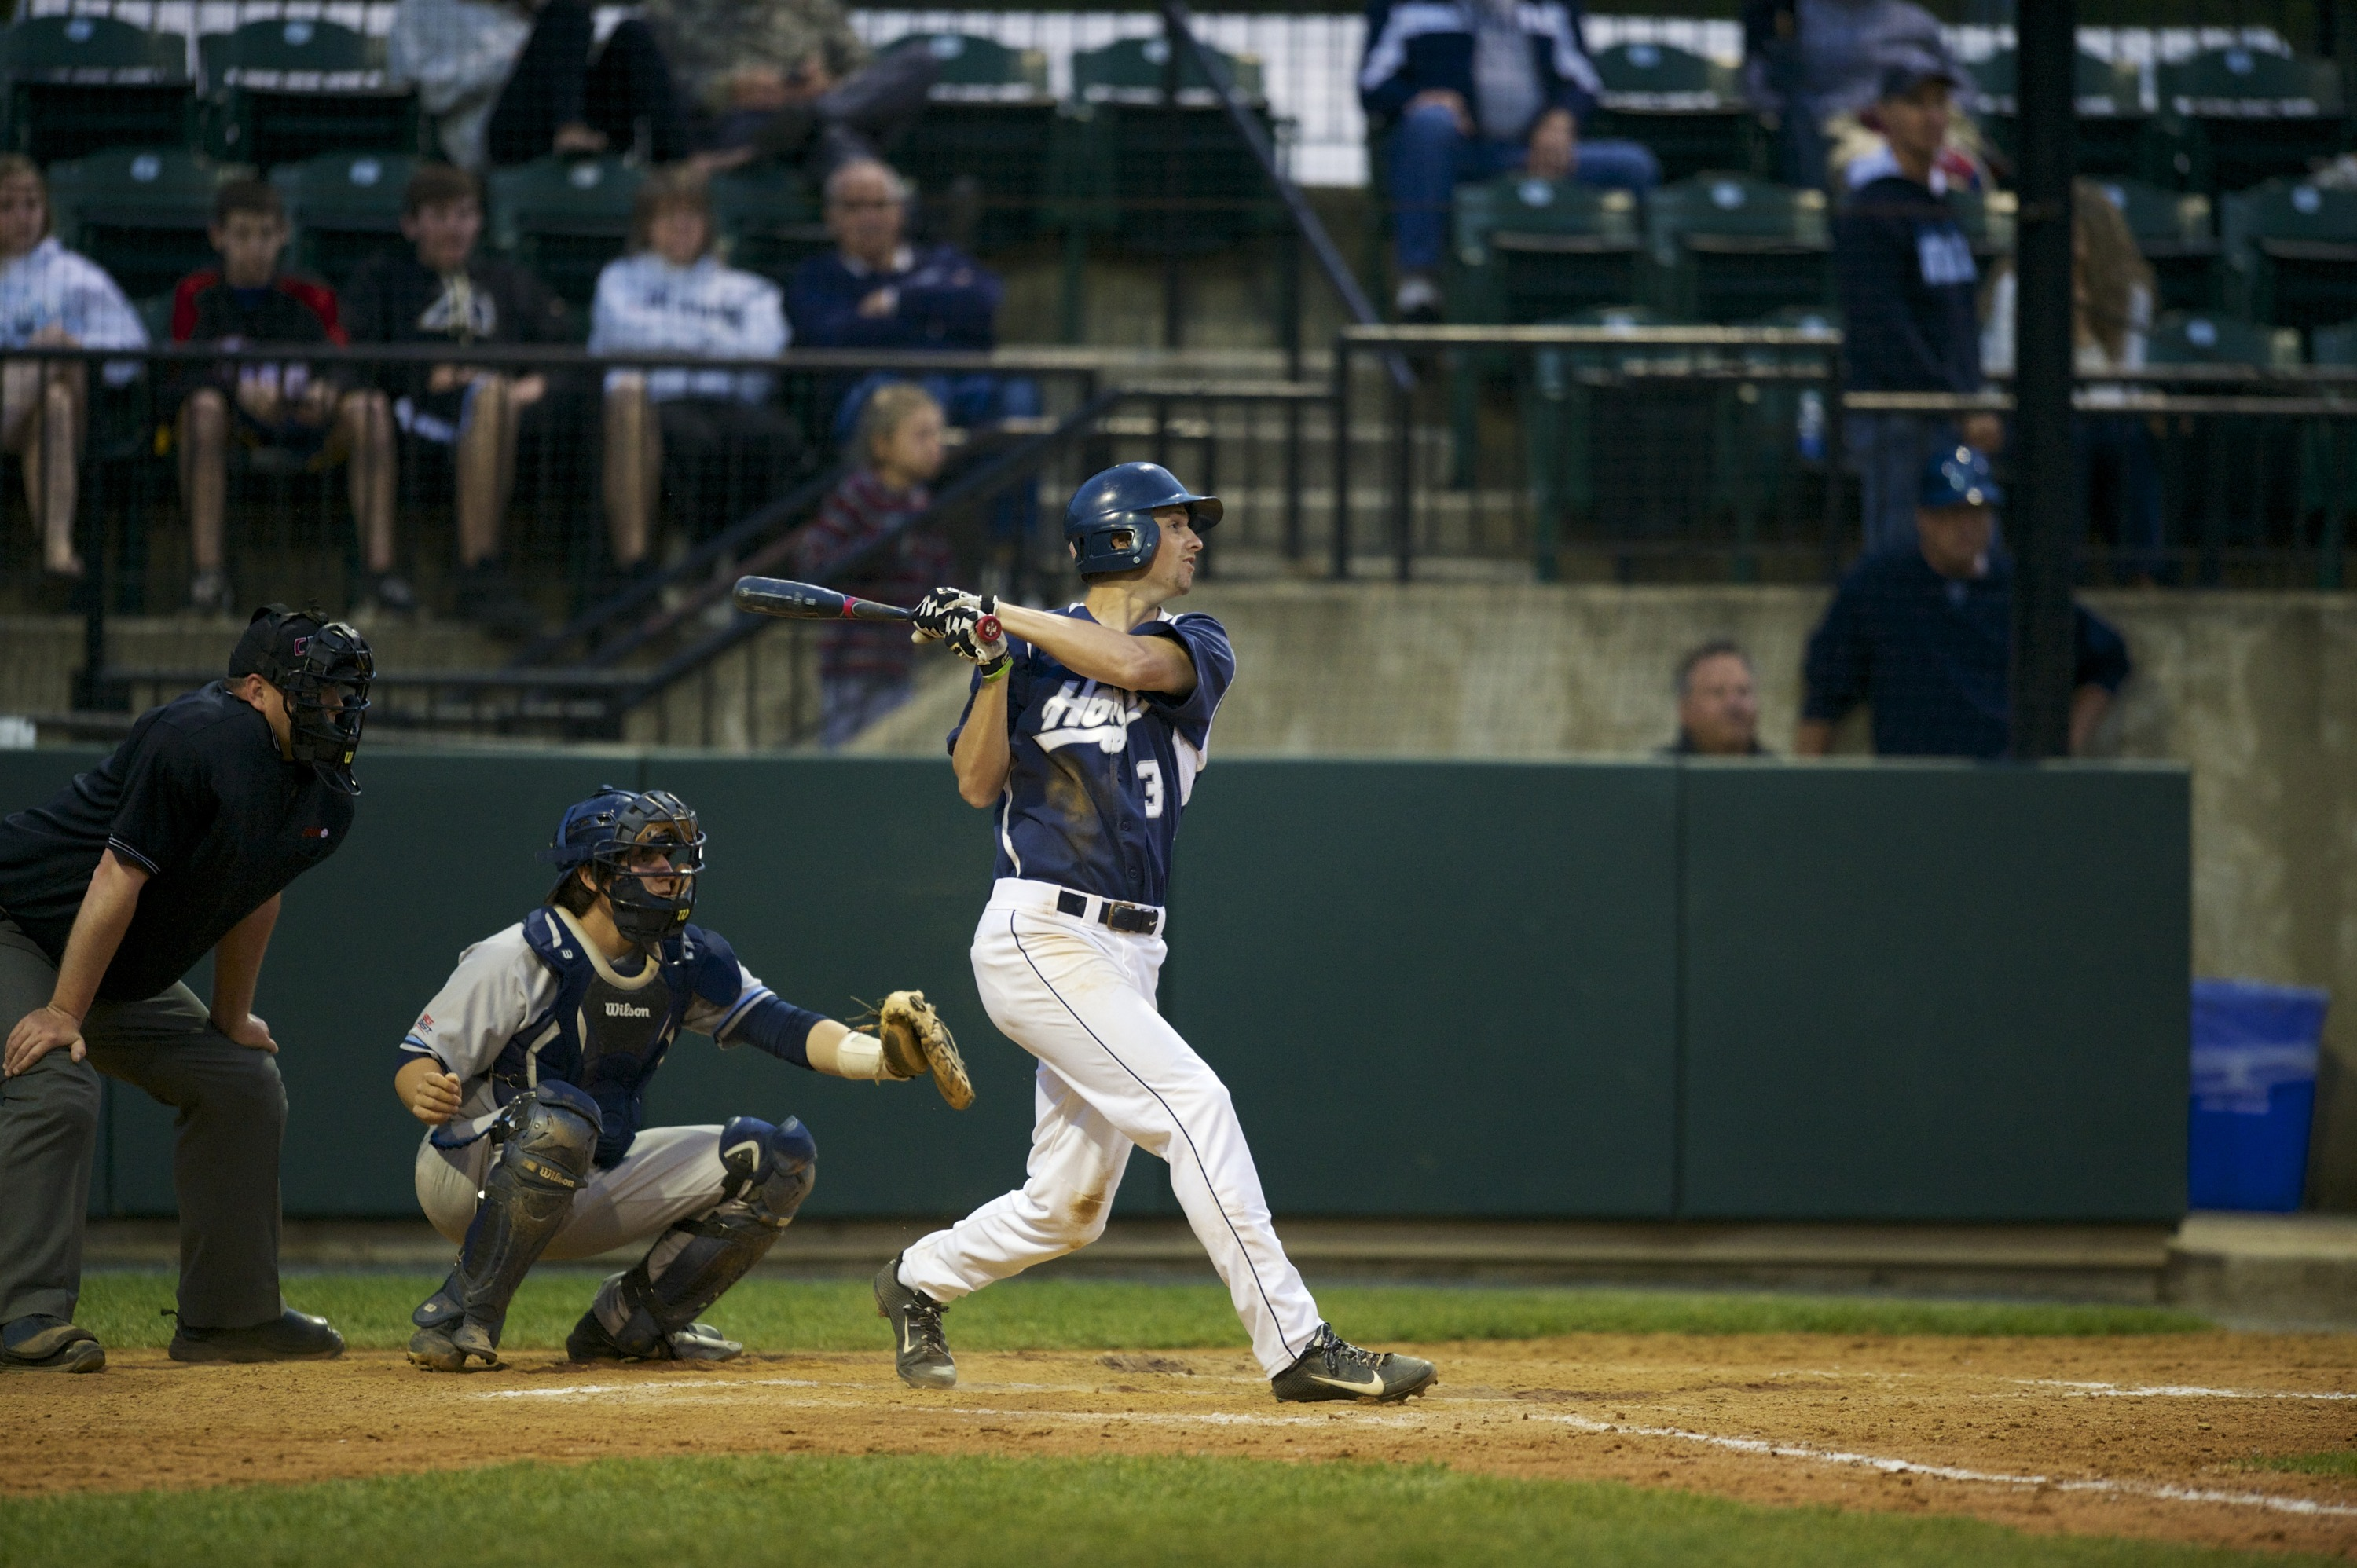 Joseph Bialkowski batted .467 (7-for-15) with a .529 on-base percentage in four games last week.